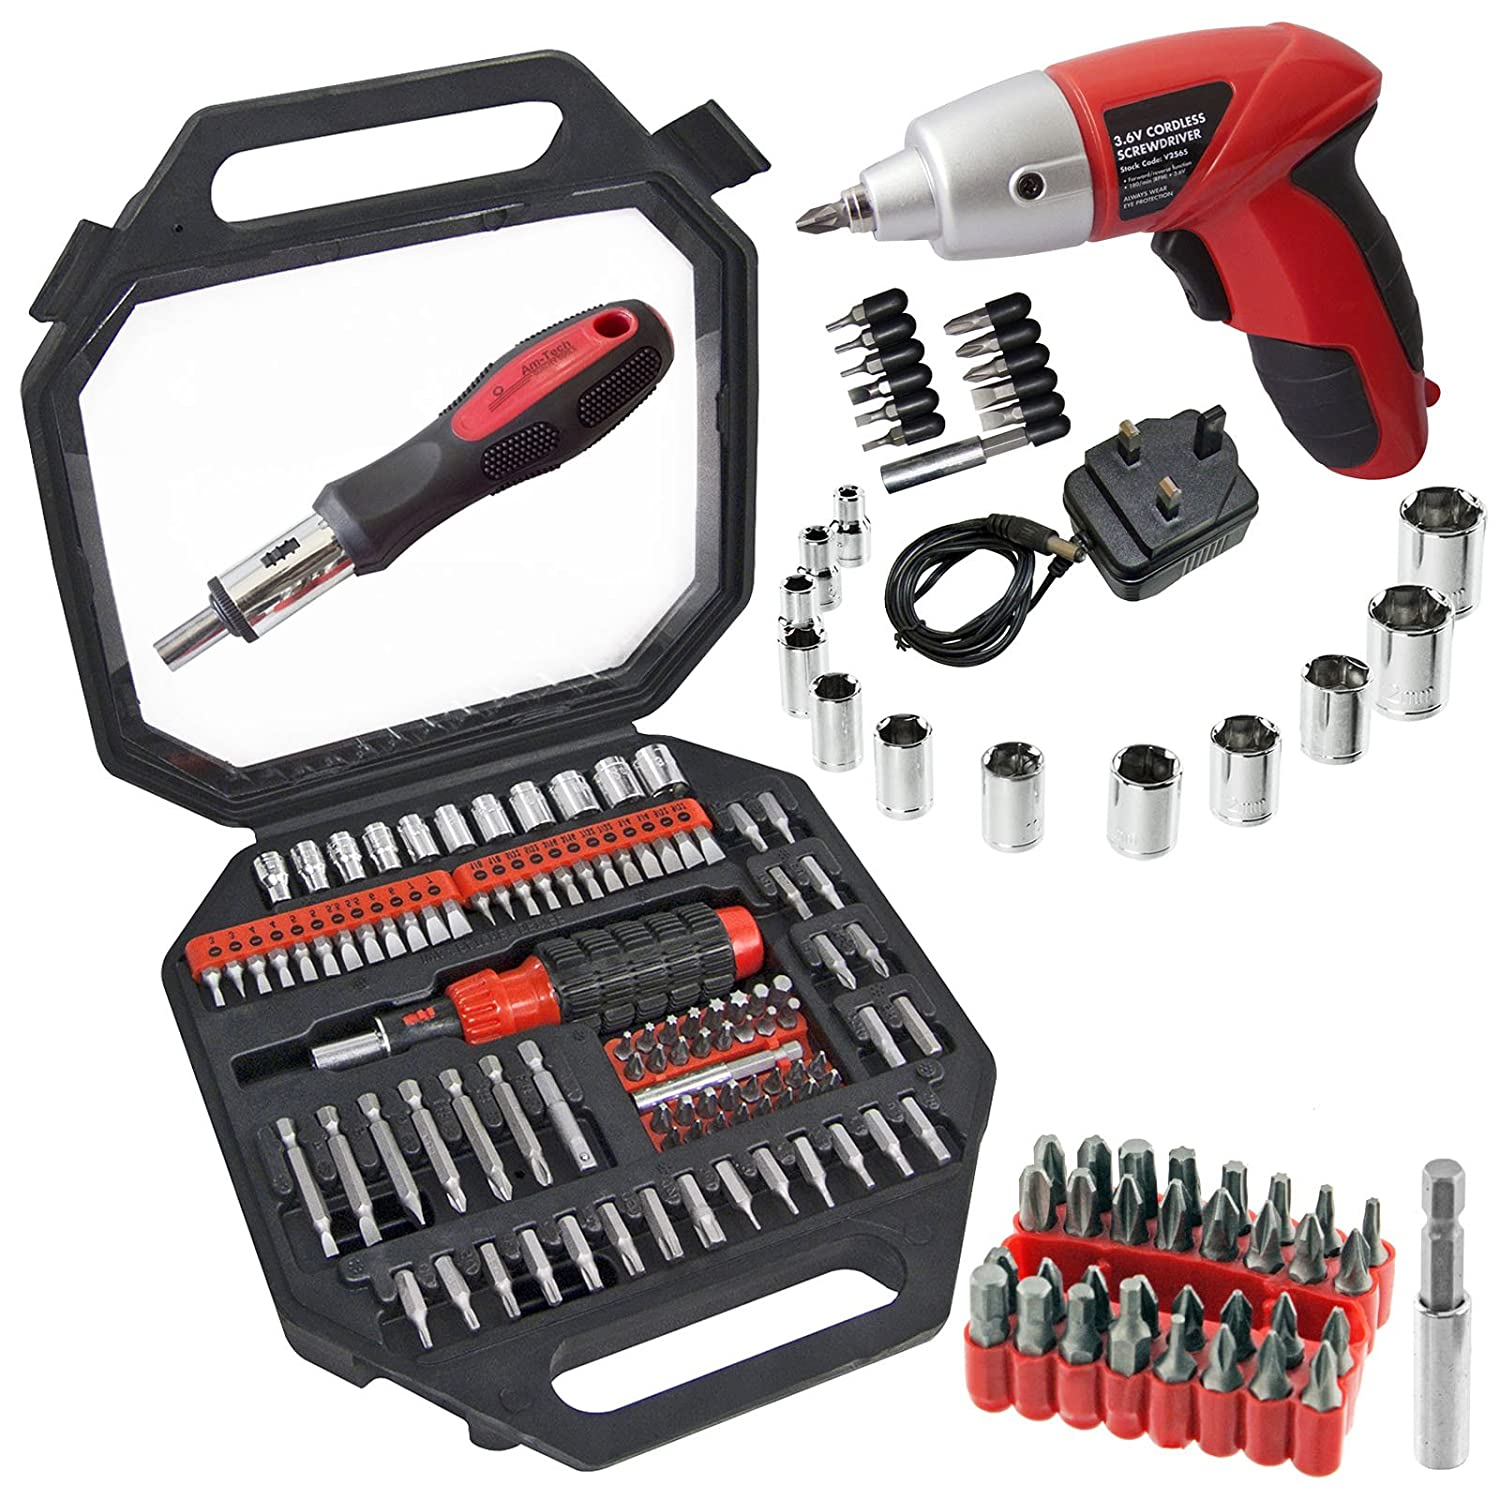 Spares2go Complete Magnetic Screwdriver /& Bit Tool Kit Mini Cordless Rechargeable Electric Screwdriver